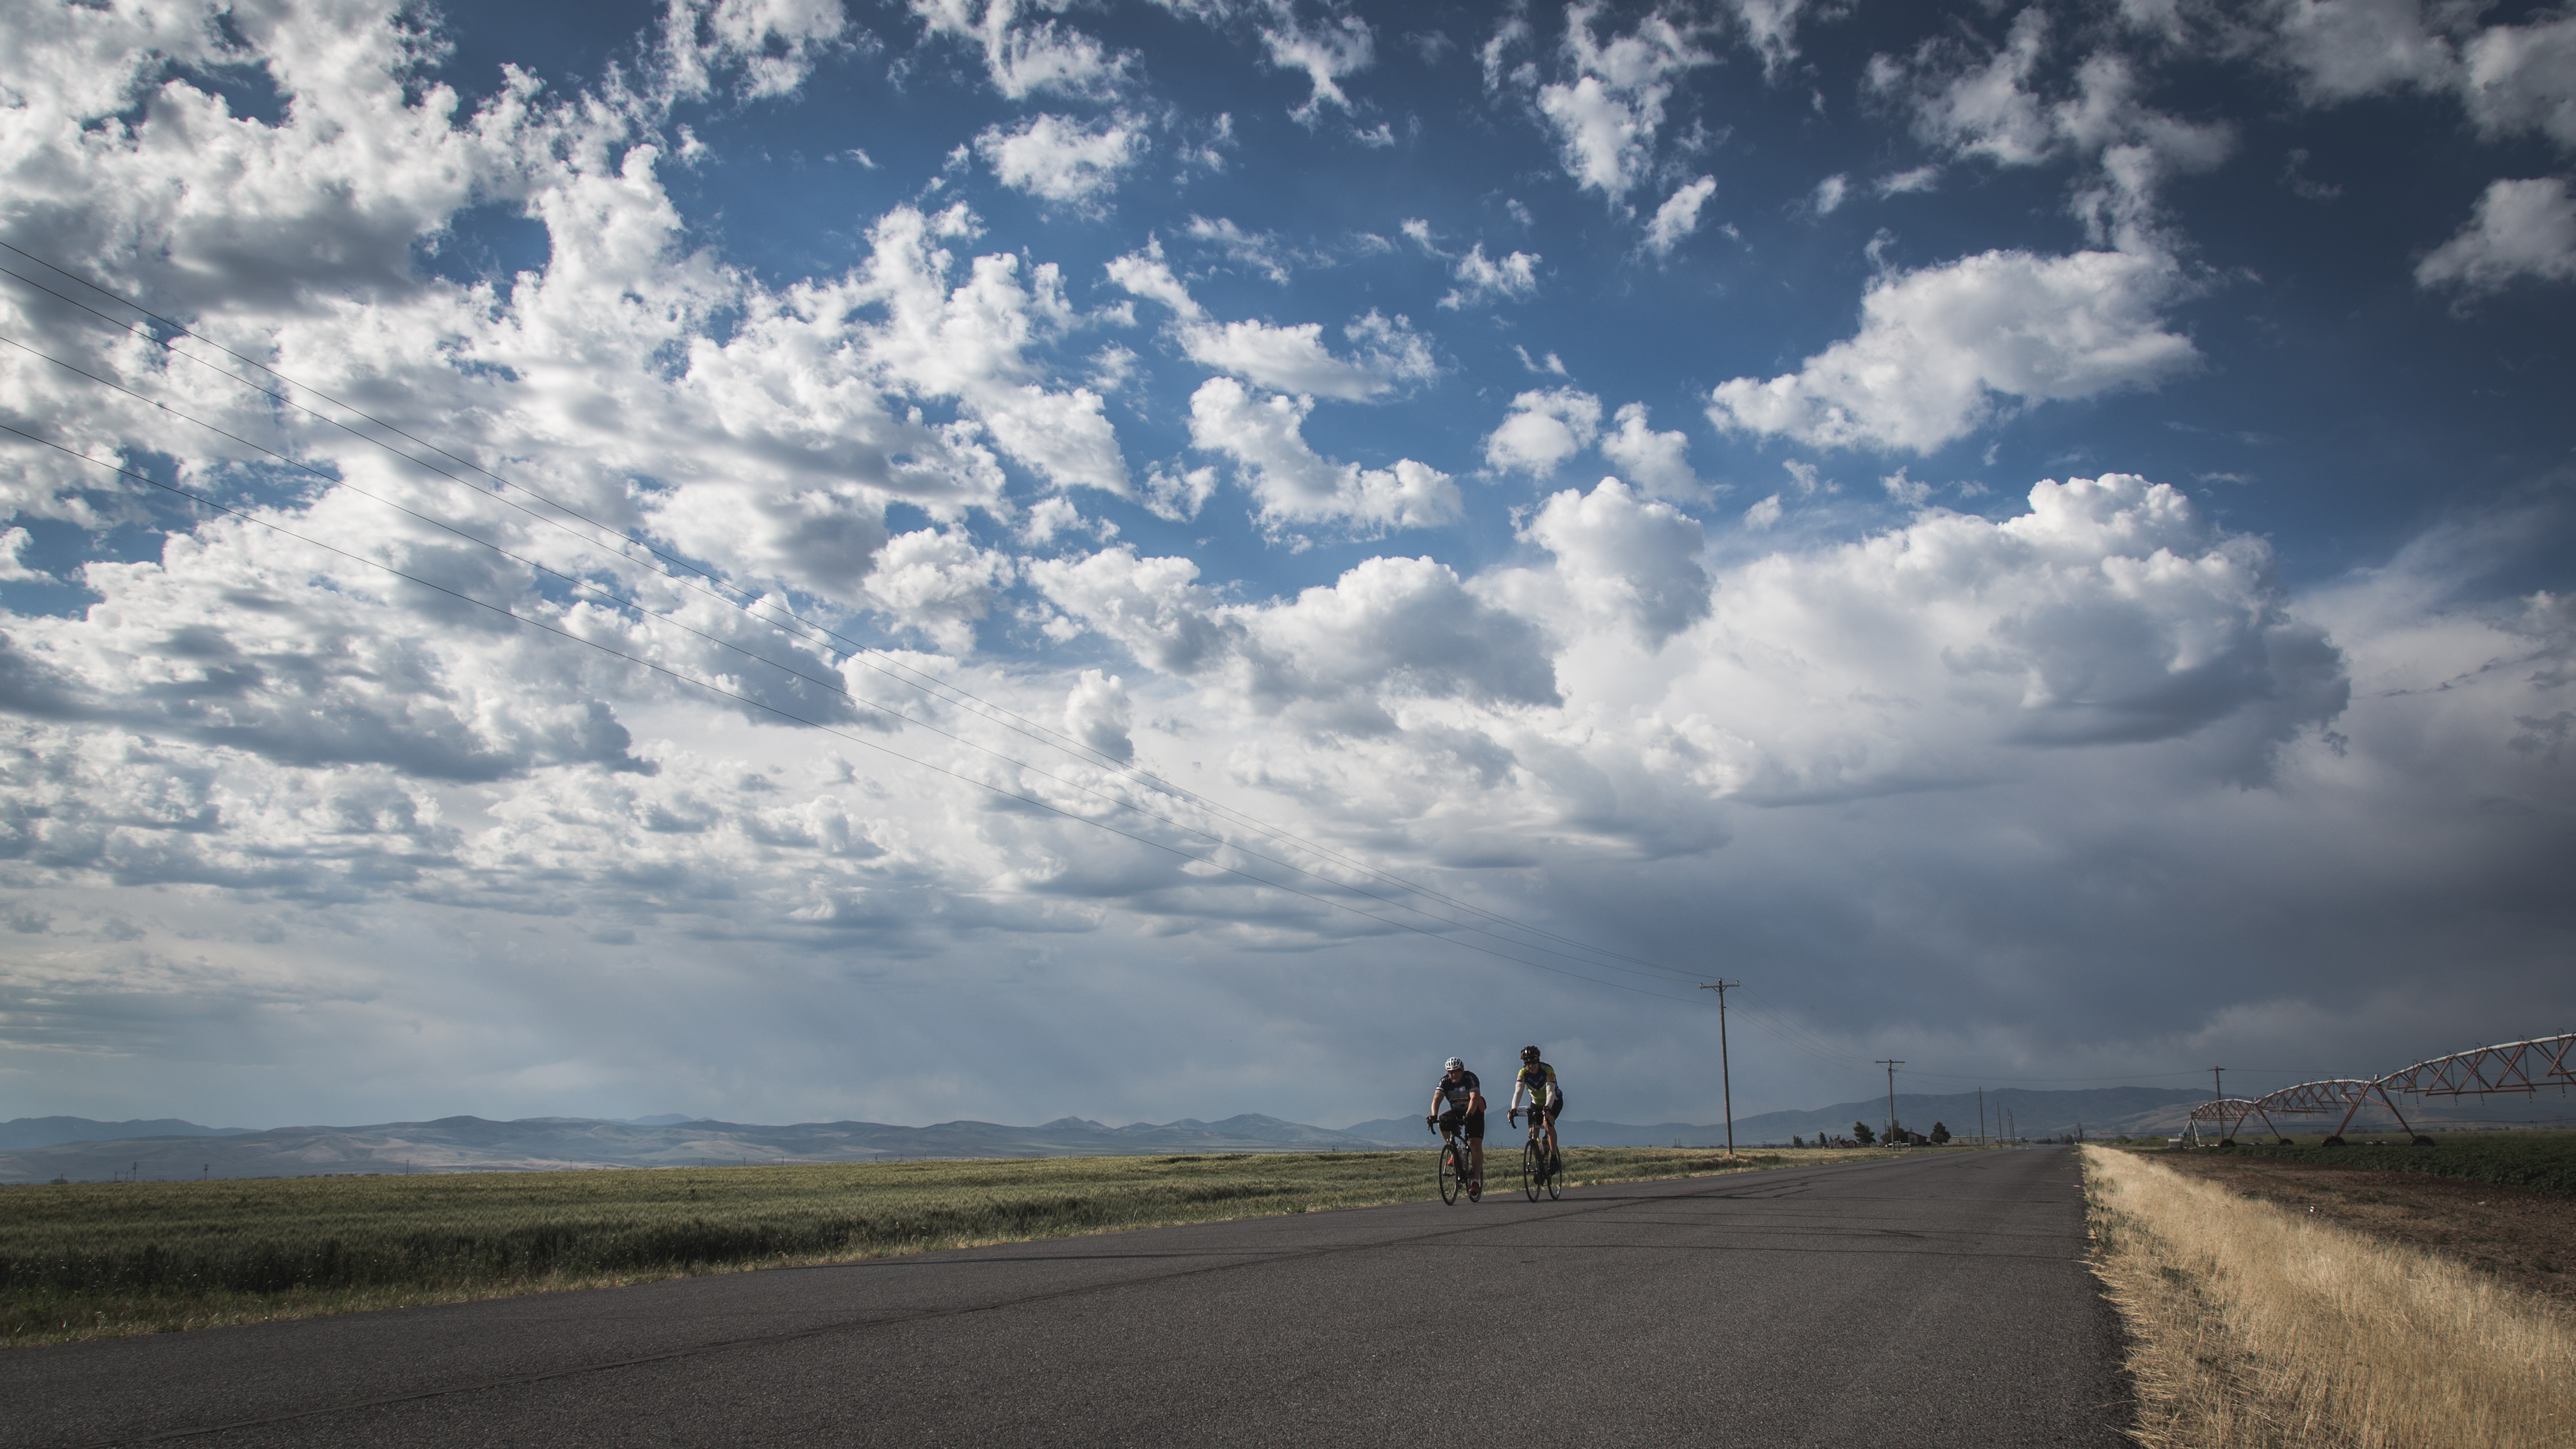 Cyclists and clouds